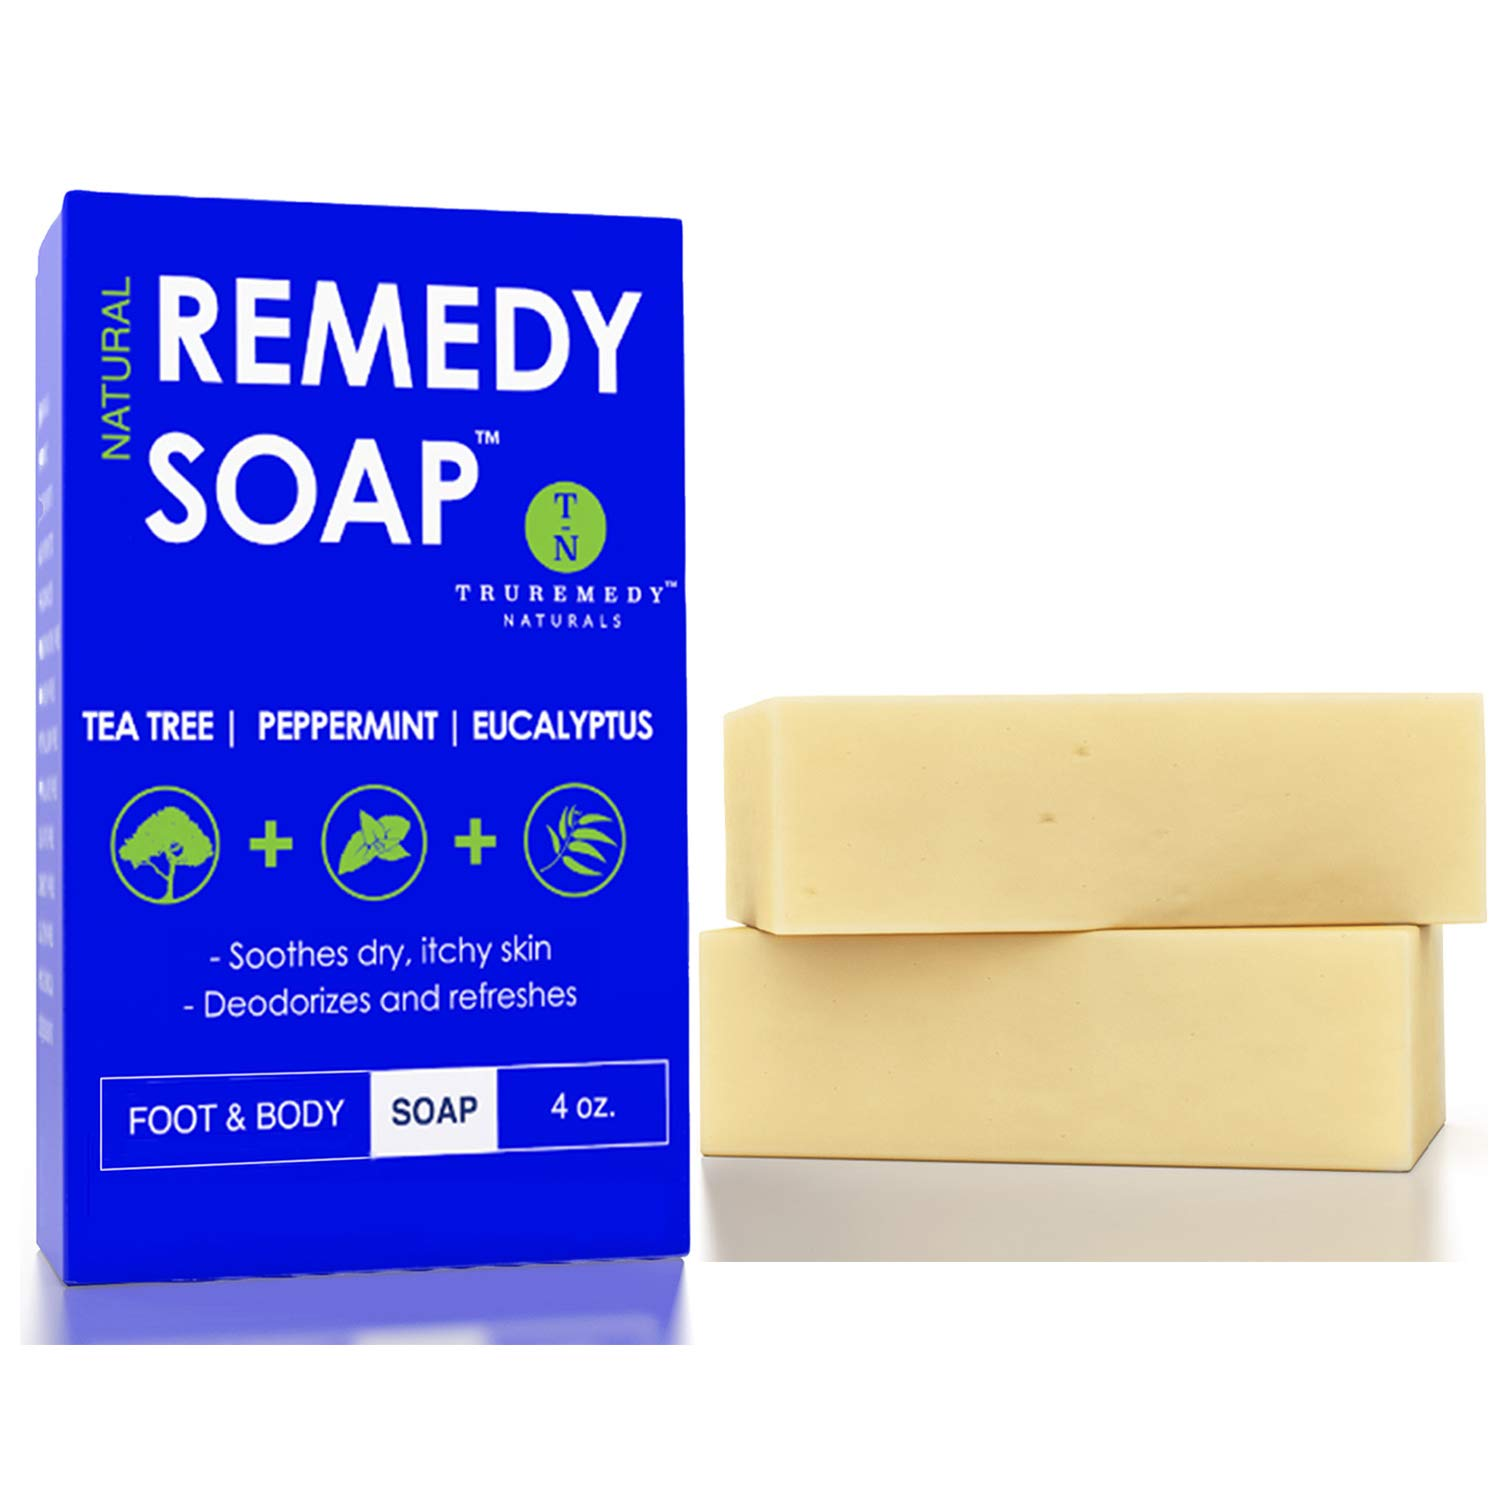 Remedy Natural Tea Tree Oil Soap Bar for Men/Women (Pack of 2) – w/ Peppermint & Eucalyptus - Face & Body Soap for Acne, Body Odor, Skin Irritations & All Skin Types by Truremedy Naturals